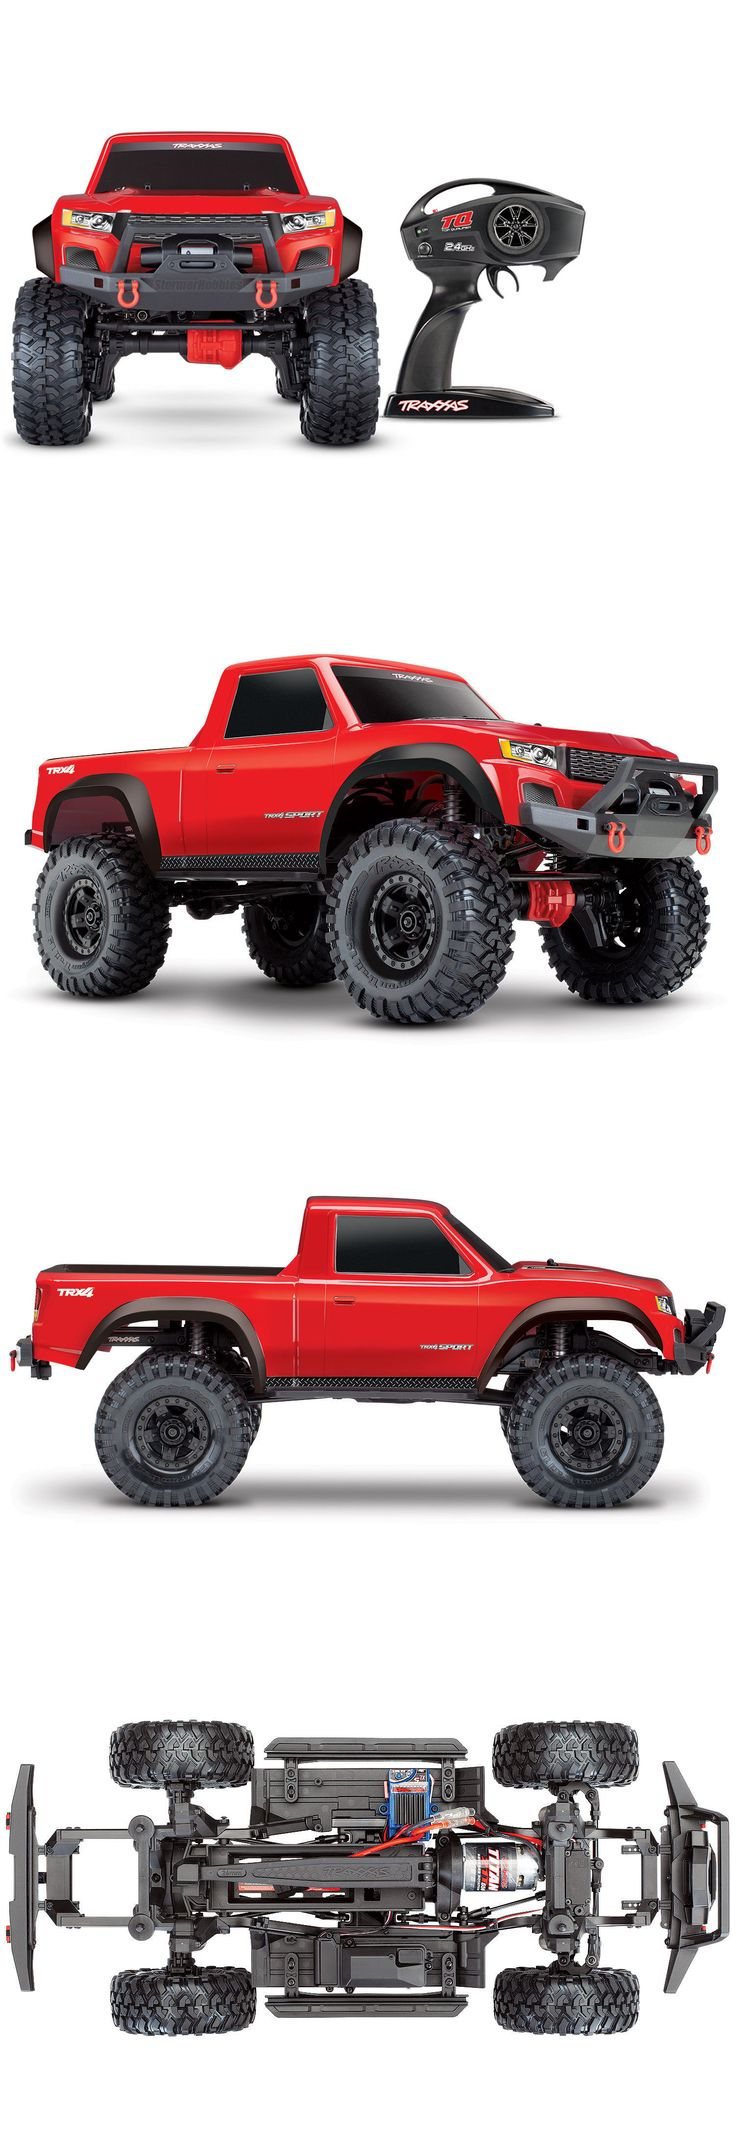 Details about Traxxas TRX4 Sport RTR with Red Body